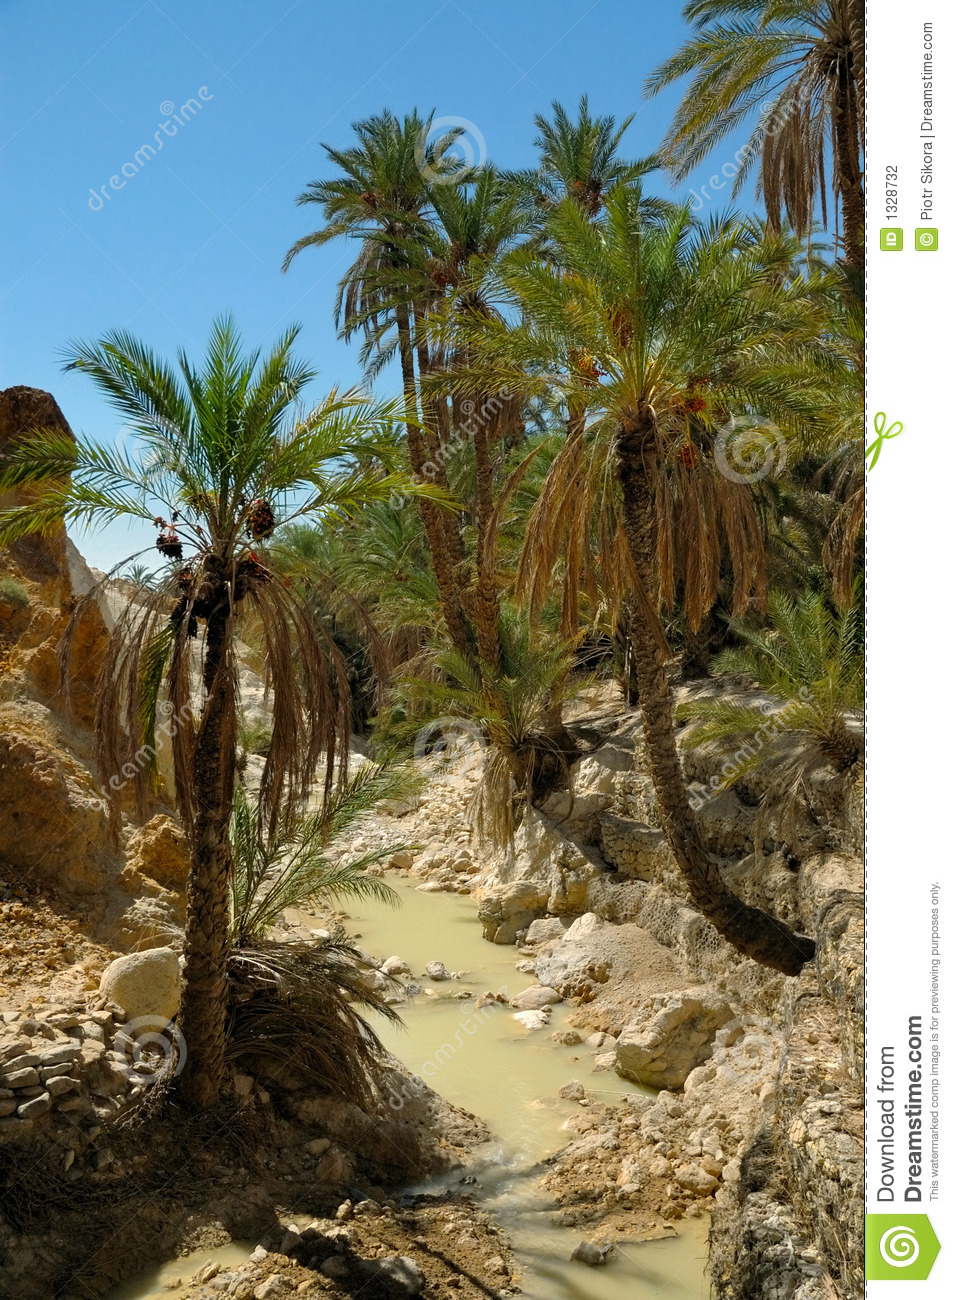 Palm Trees Over Small River In Desert Oasis Stock